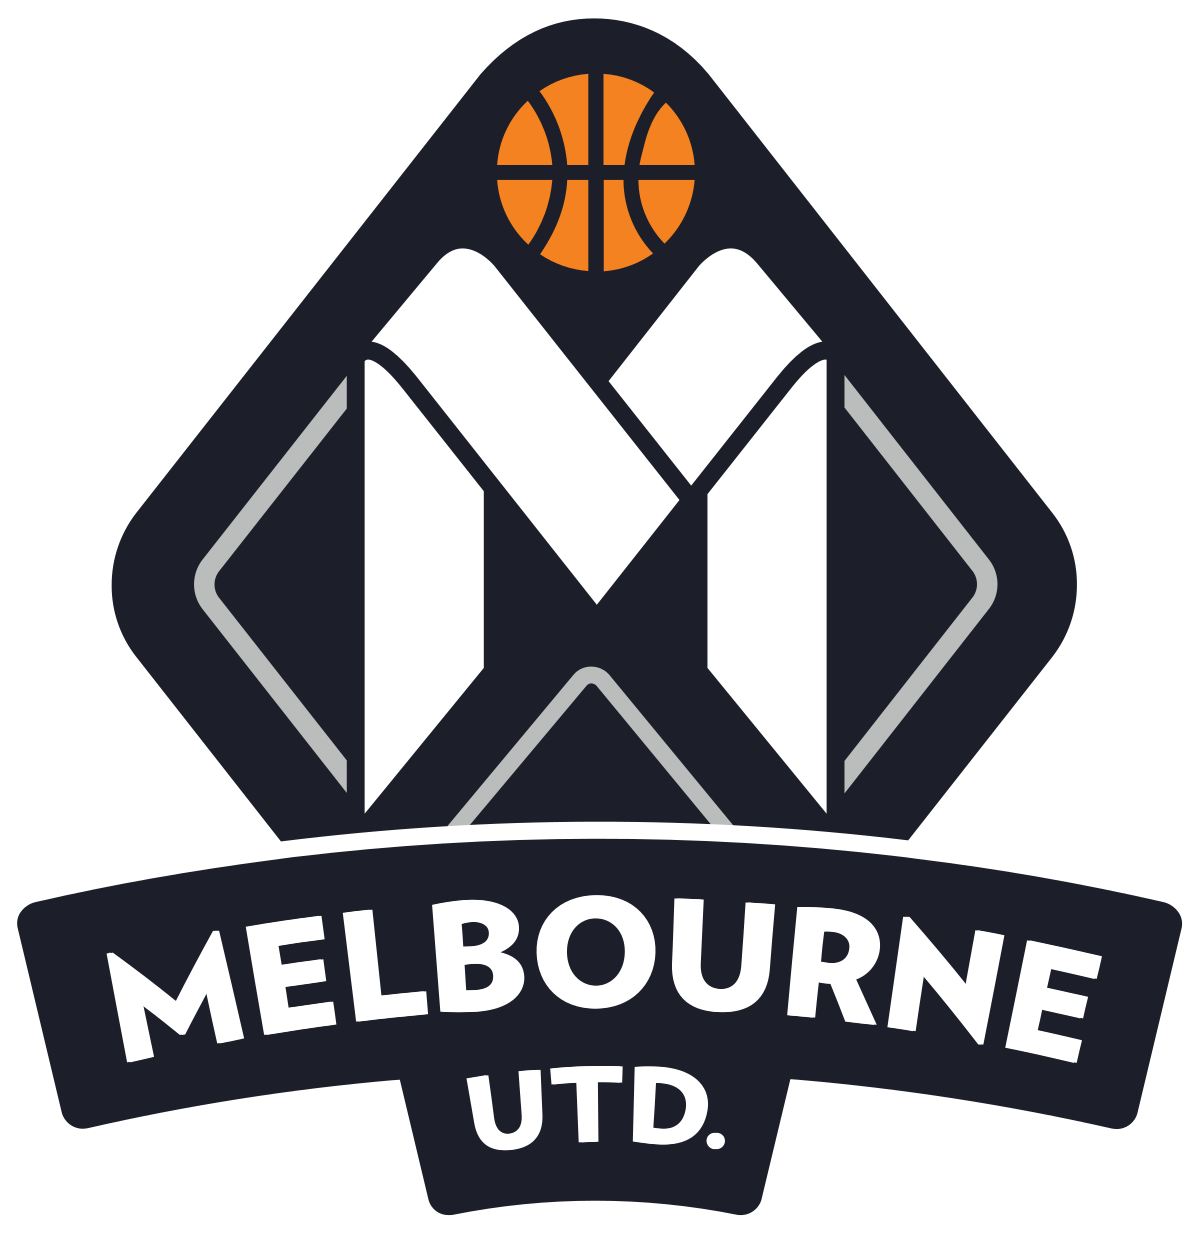 Tiger basketball sayings clipart clip black and white download Melbourne United - Wikipedia clip black and white download